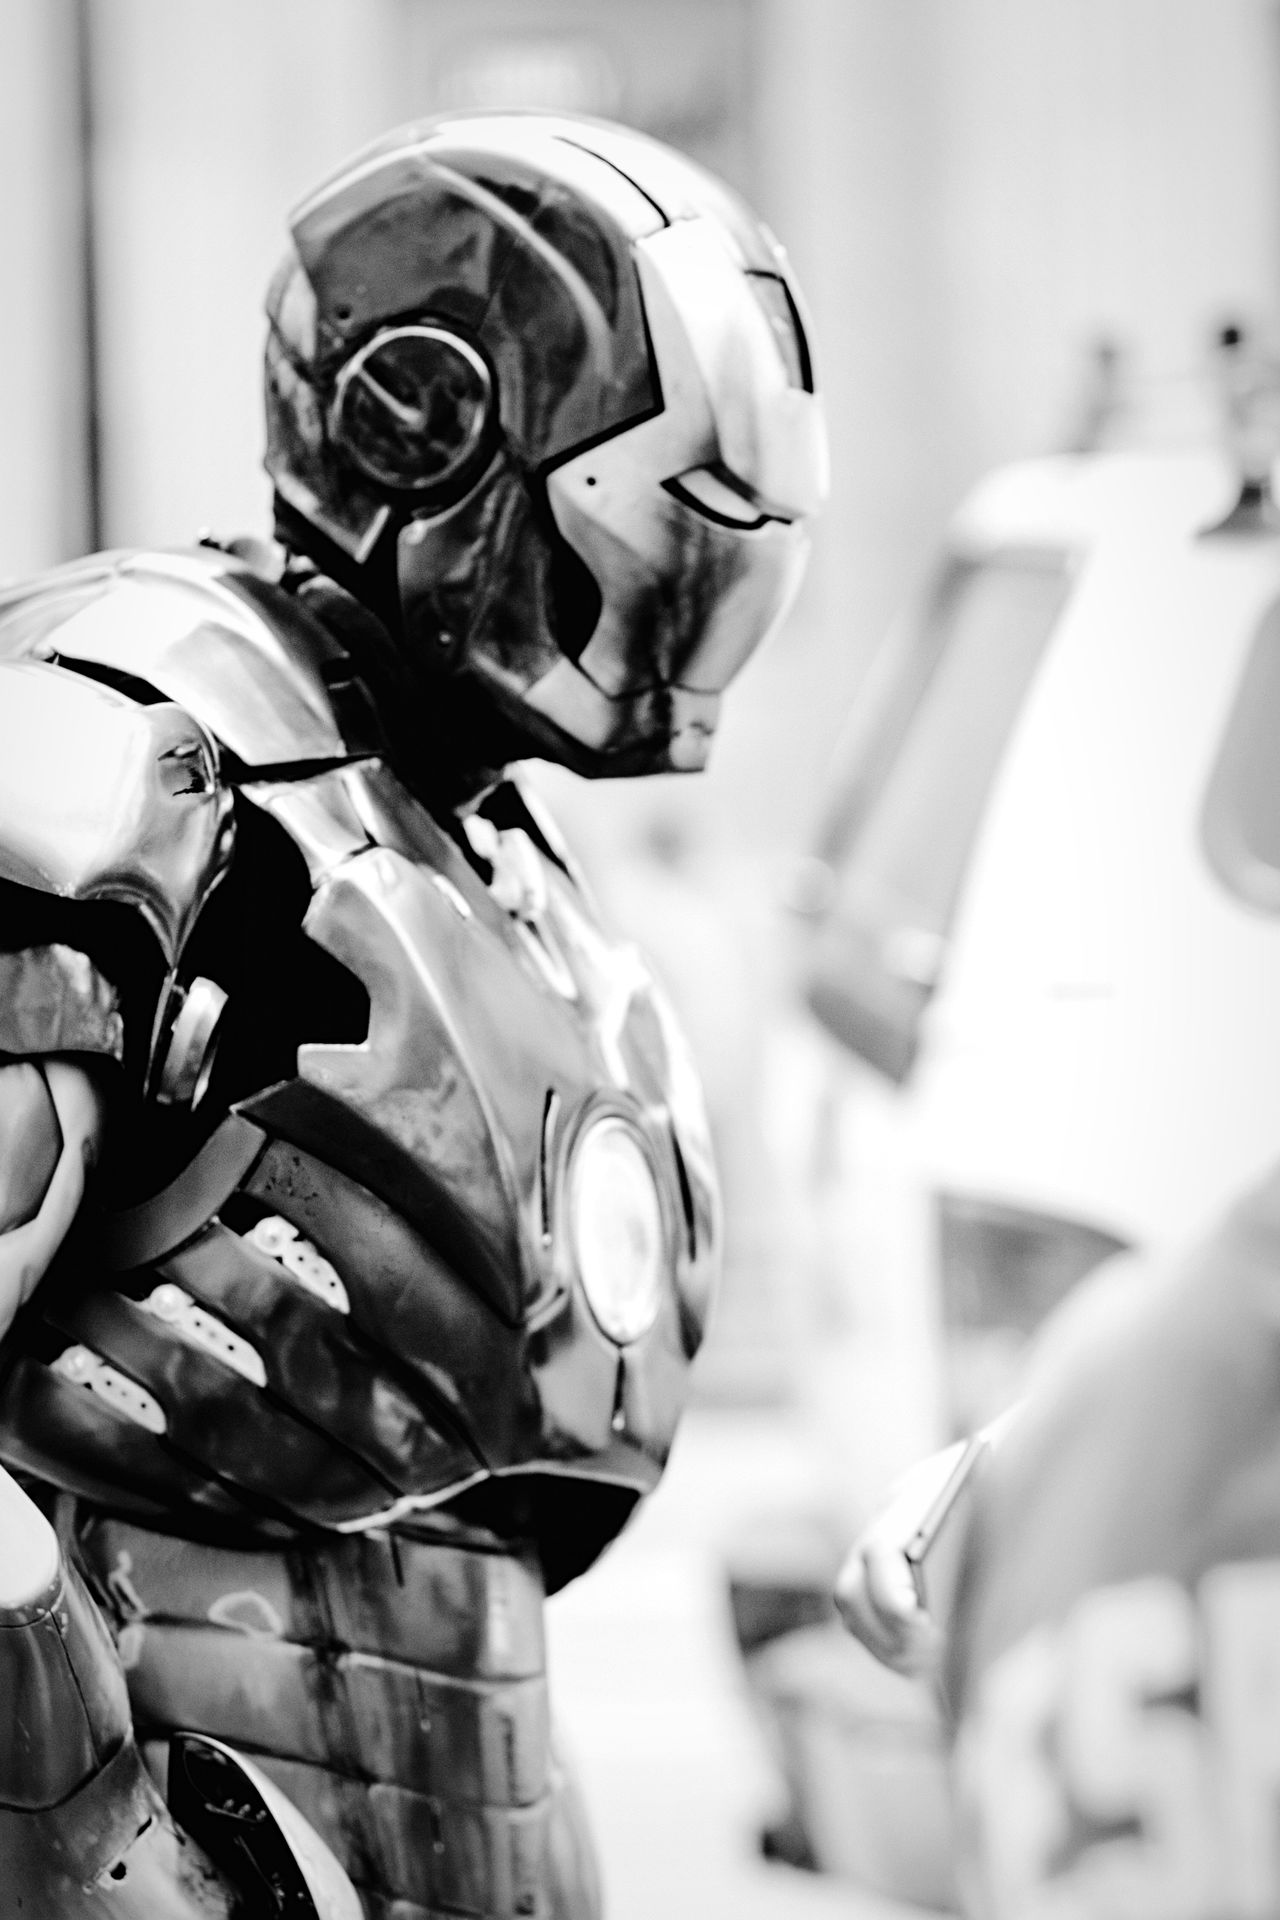 Iron man! Hollywood Ironman Streetphotography Blackandwhite Avengers Taking Photos Streetphoto_bw Open Edit Getting Inspired